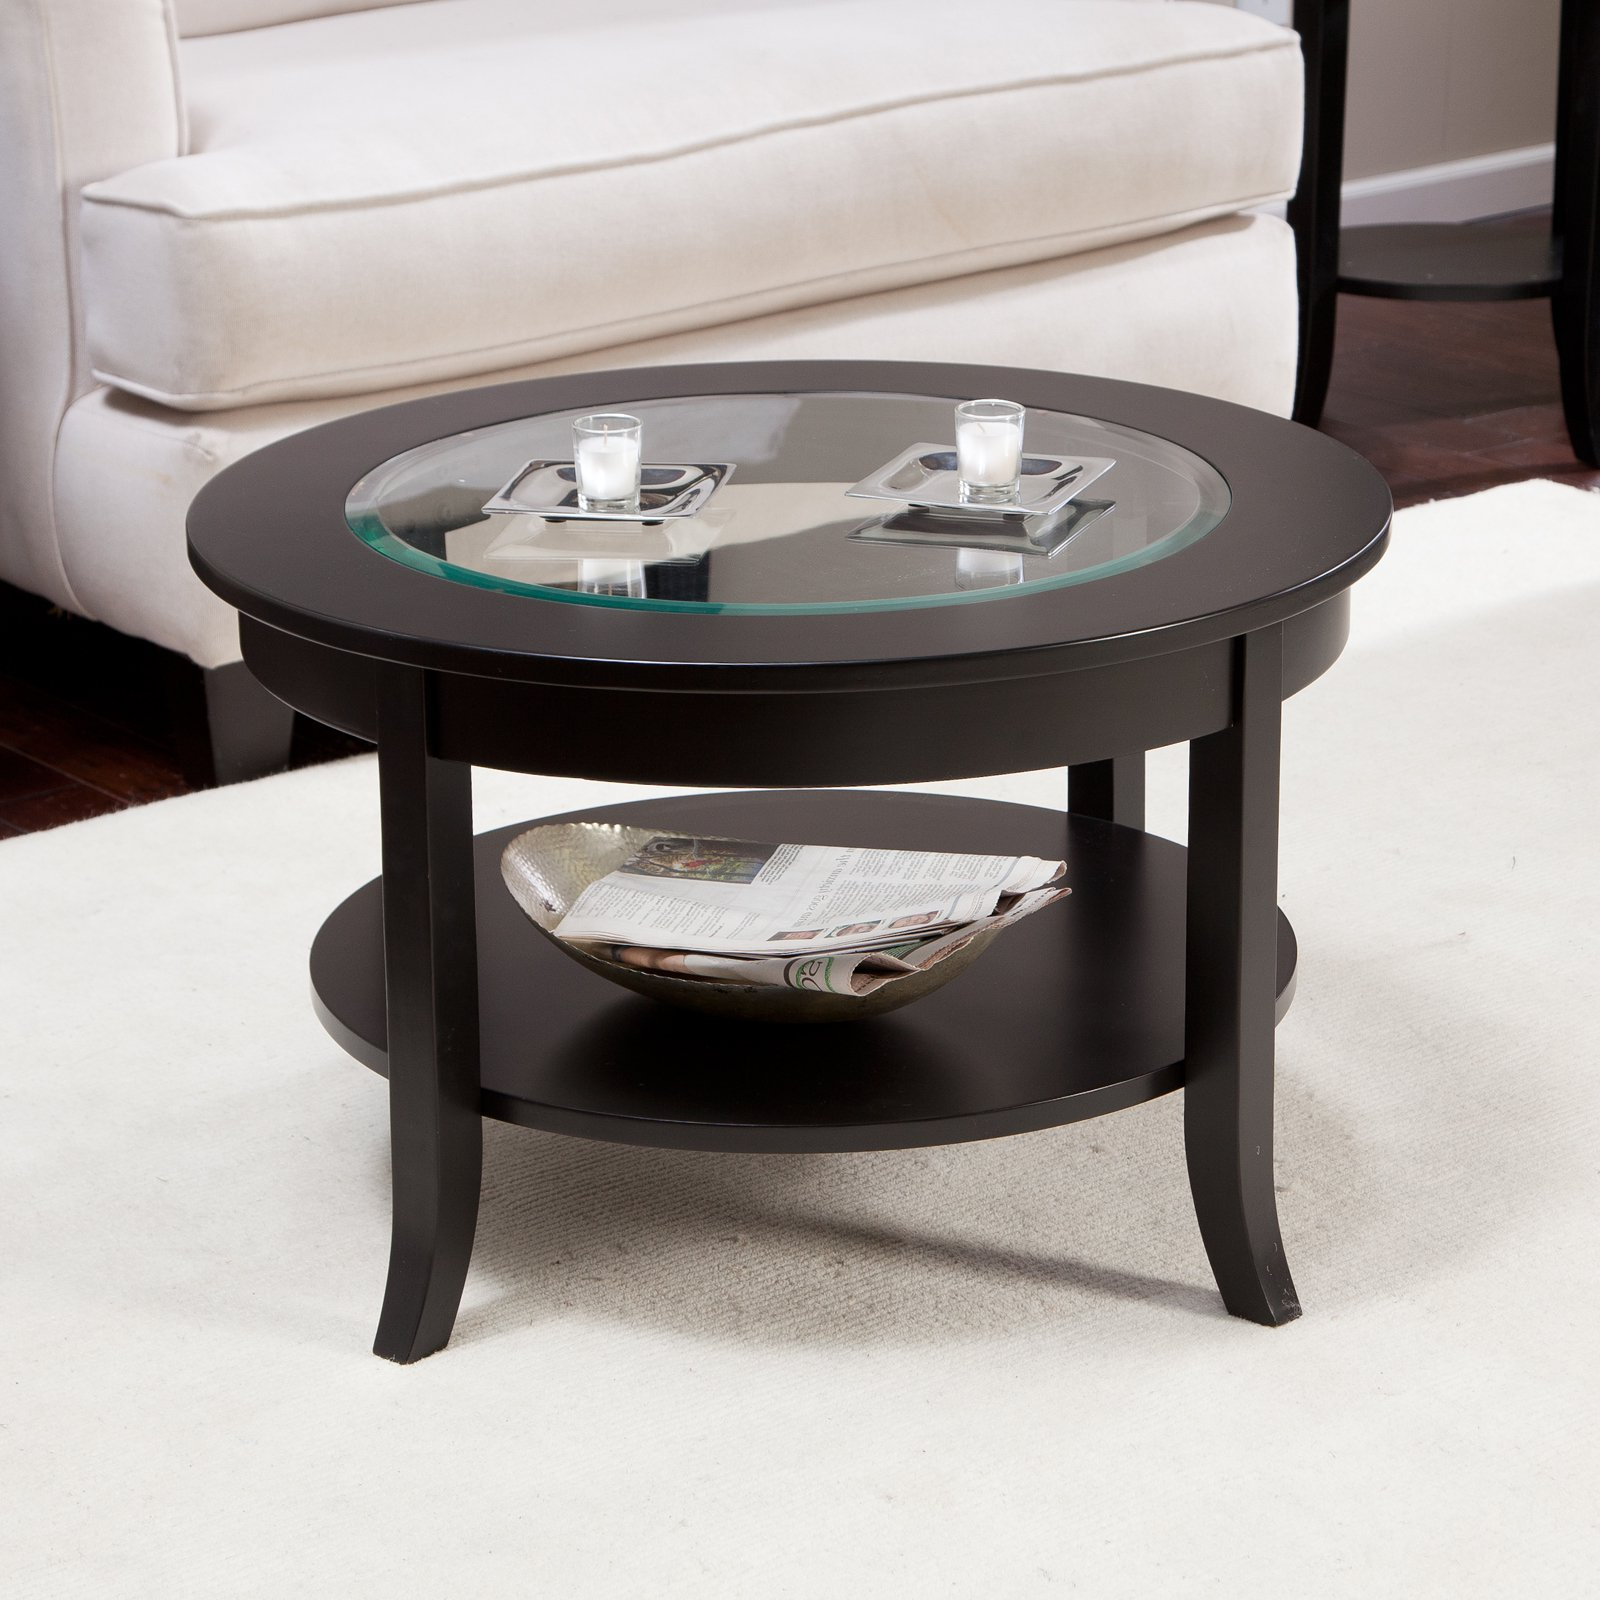 Torrin Round Cocktail Tables For Fashionable Exciting Small Glass Coffee Table Style Design (View 10 of 20)